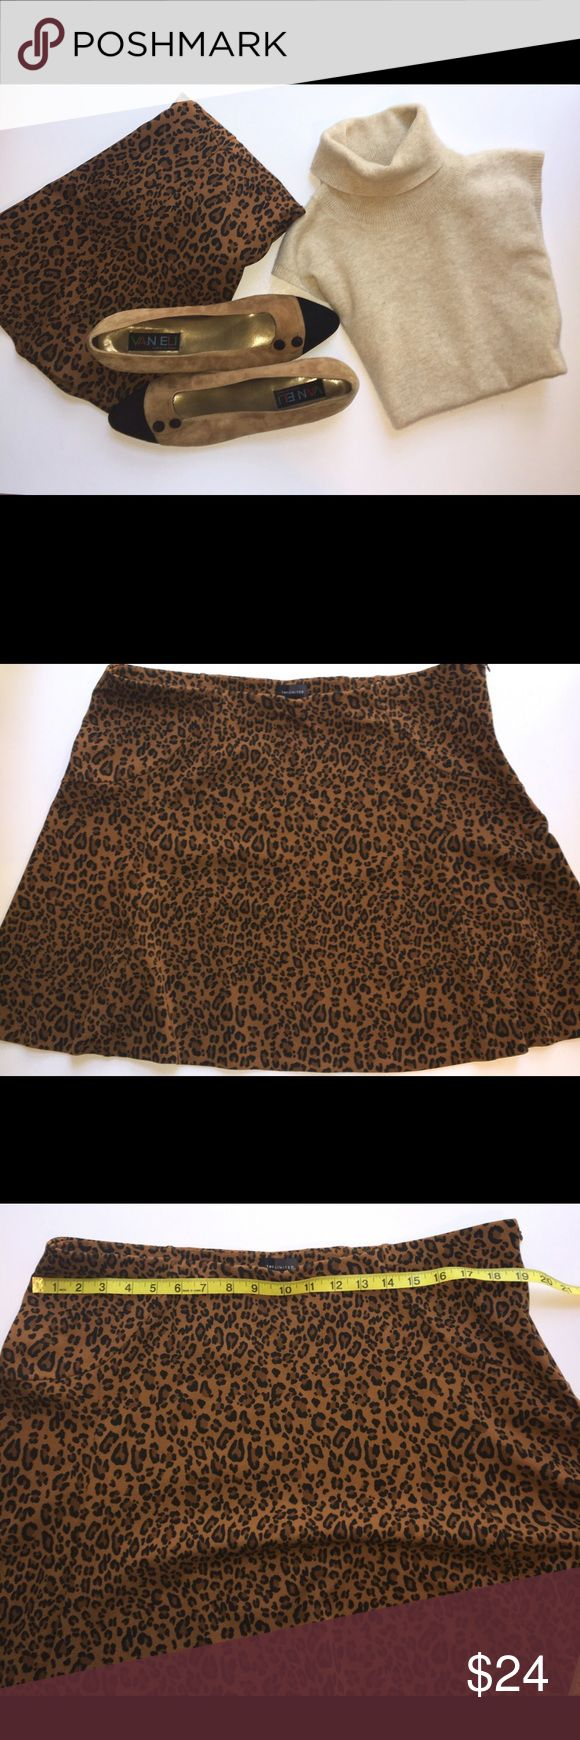 "Limited Leopard Skater 18.5"" Skater Skirt EUC Limited XL skater skirt is versatility defined! Pair with tights and boots for work or sandals and a tee for the weekend. Either way, you'll be perfectly fashionable in this 18.5"" long skirt. No material tag, but it does contain spandex or polyester for stretch and weight, so it will not fly up. PIctures show measurements. Worn once by me - purchased from The Limited. The Limited Skirts"